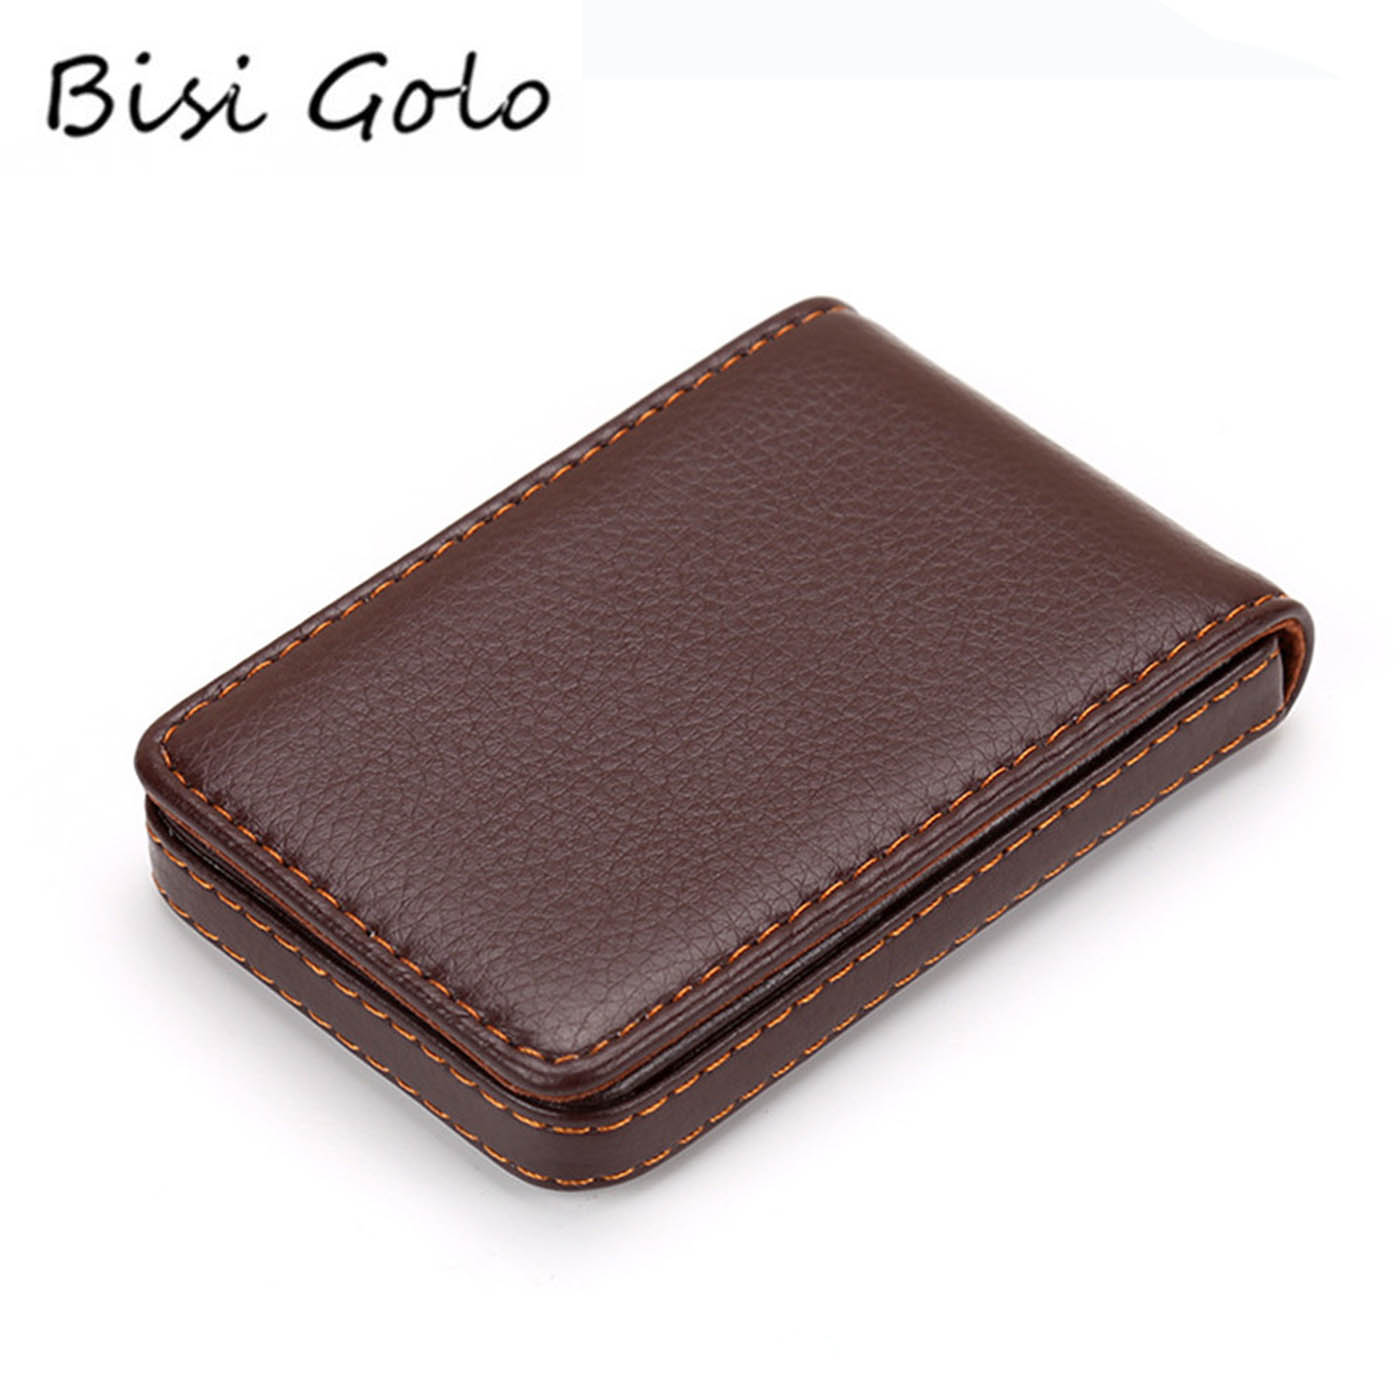 BISI GORO 2020 New Arrival Business Card Holder PU Leather Vintage Credit Card Wallets RFID Blocking Waterproof Card Holders